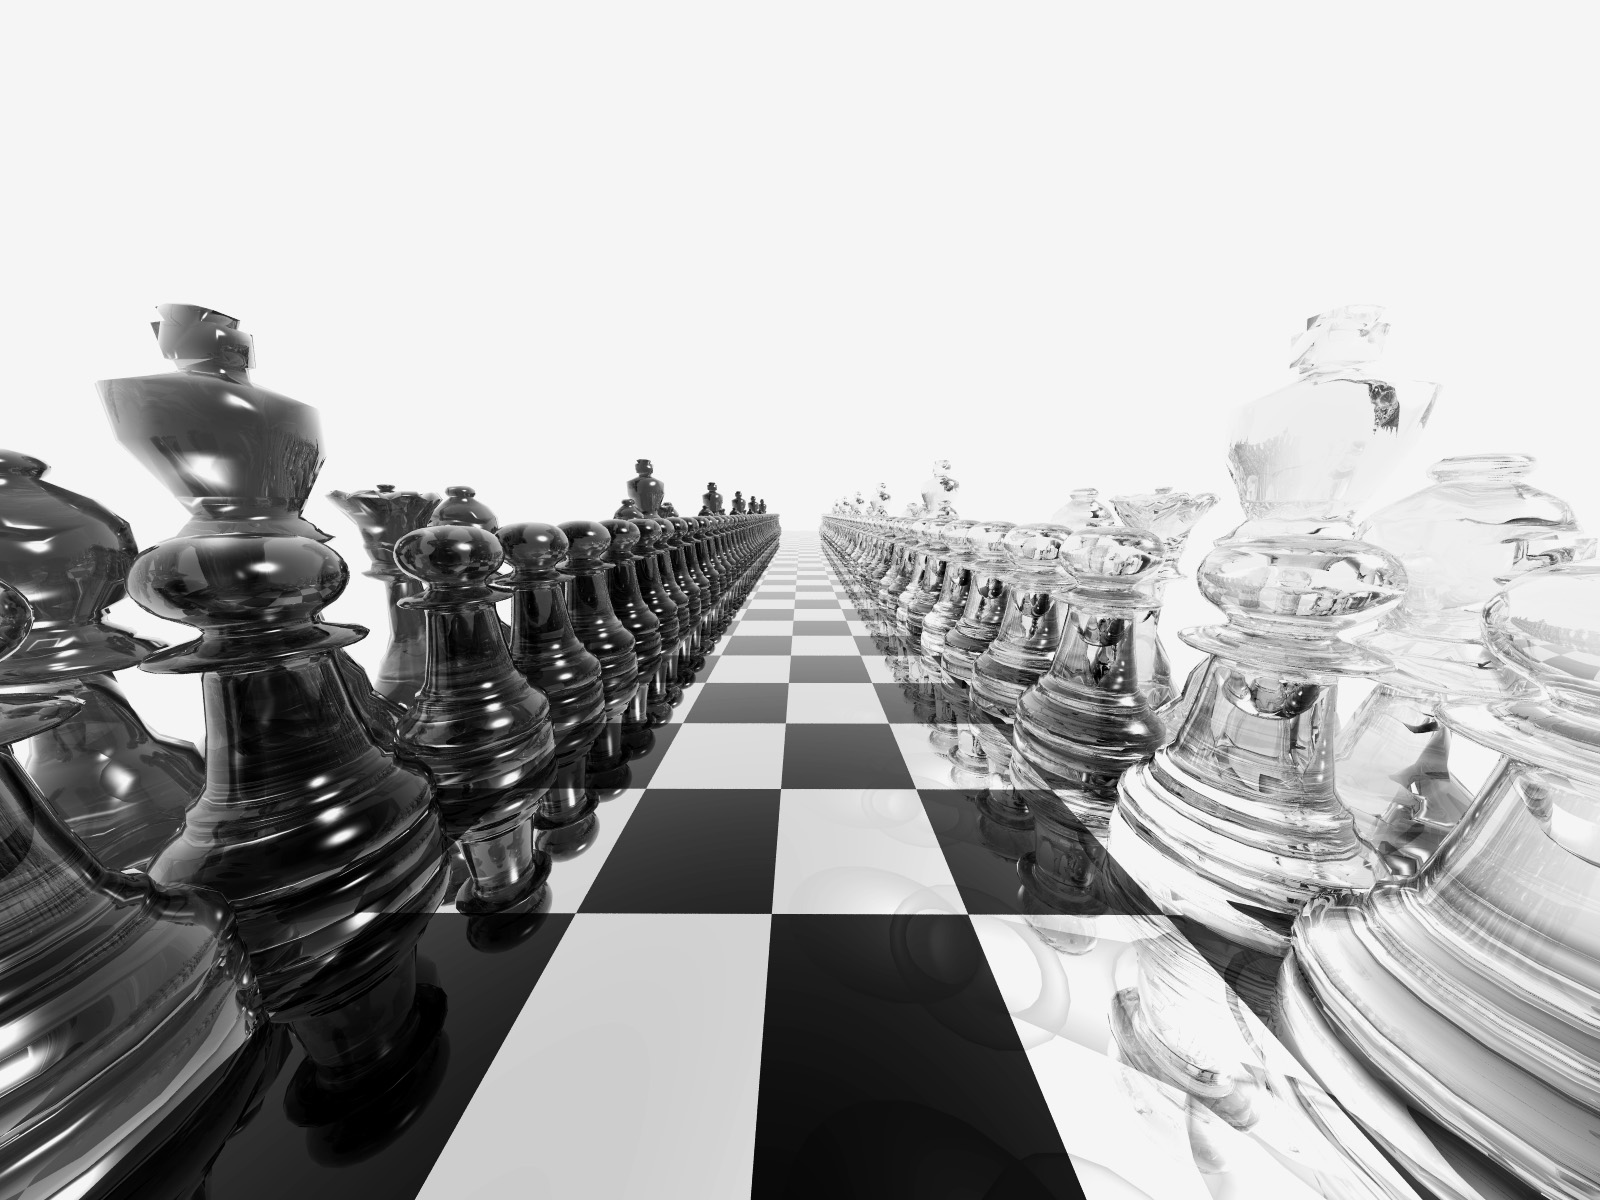 Black And White Chess 3D Wallpaper Image Wallpaper WallpaperLepi 1600x1200